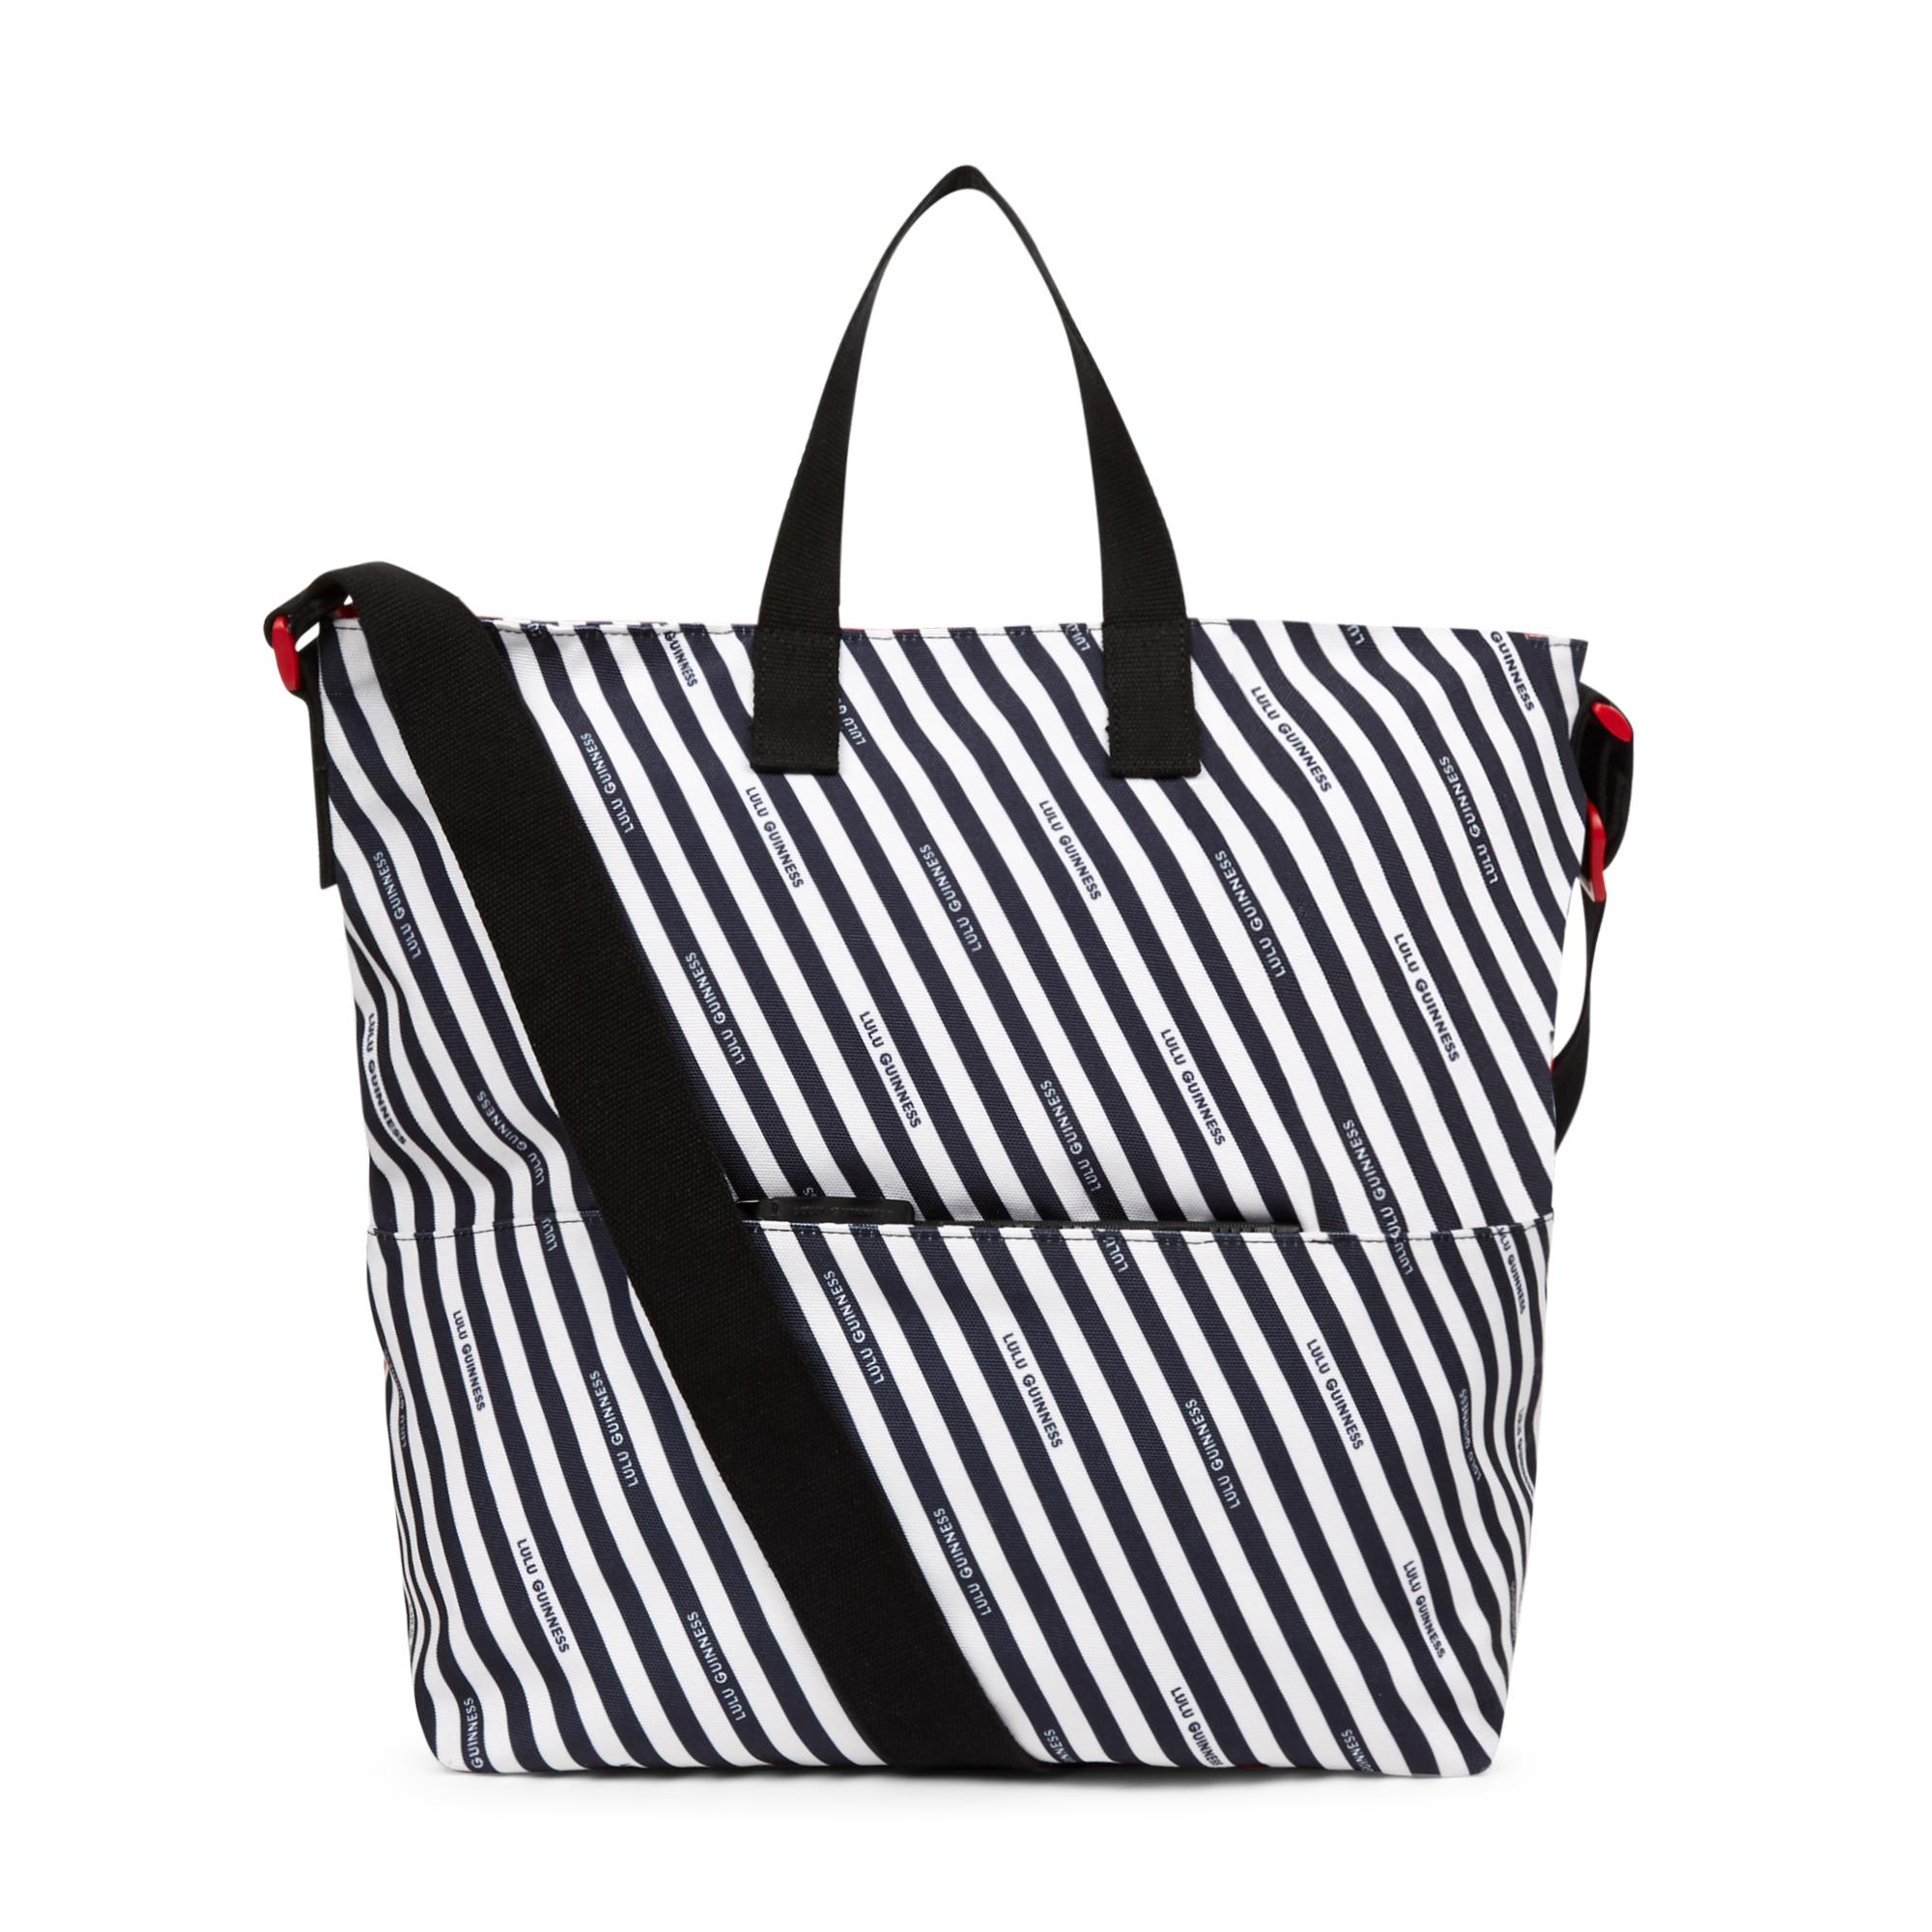 Free Shipping Lowest Price Black Romy tote bag Lulu Guinness Sale Cheapest Official Site cTvuXR1zKP